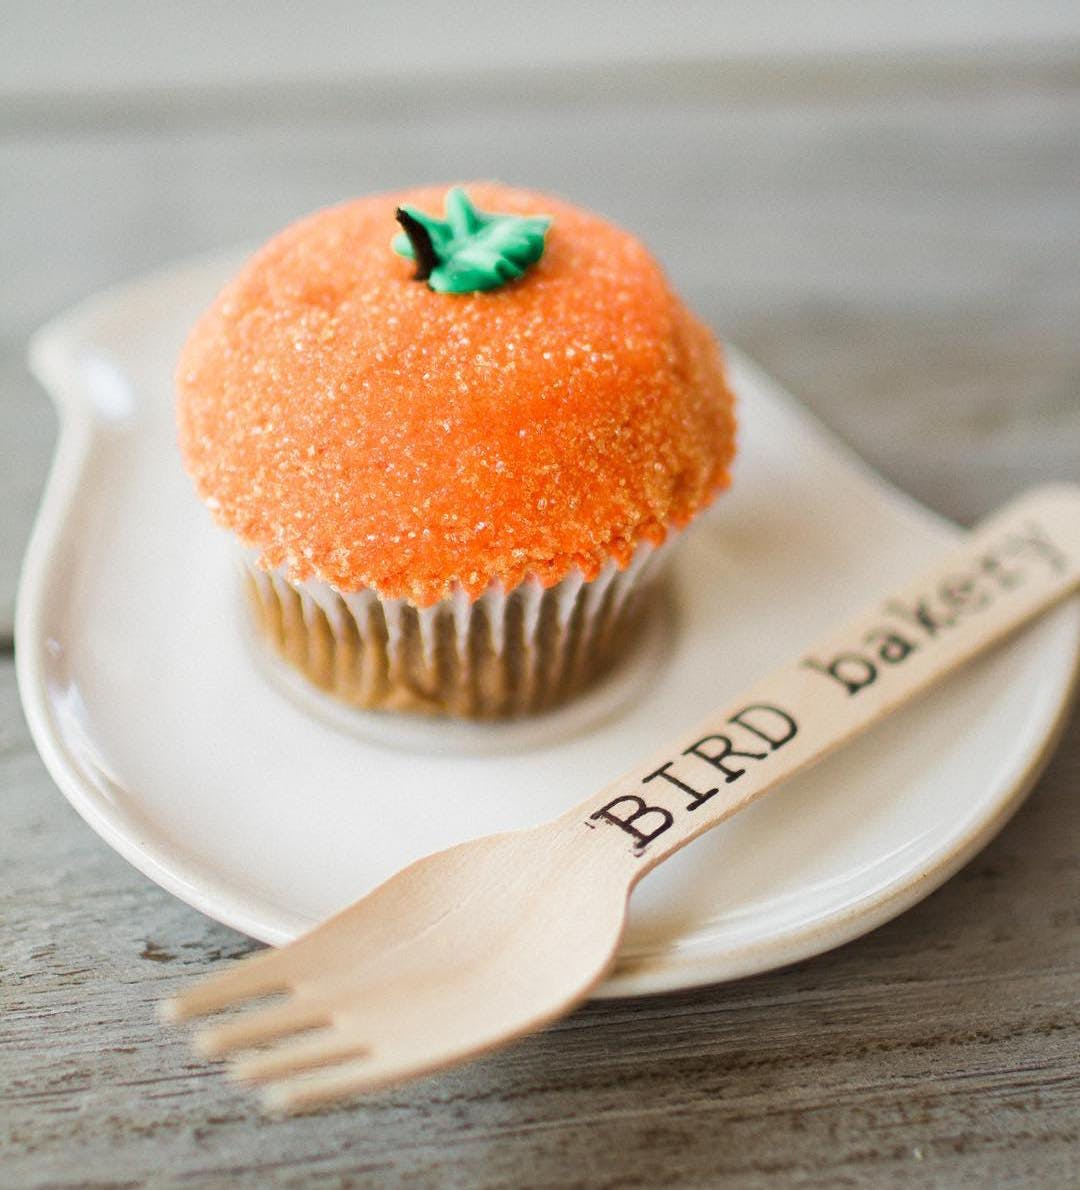 bird bakery cupcake